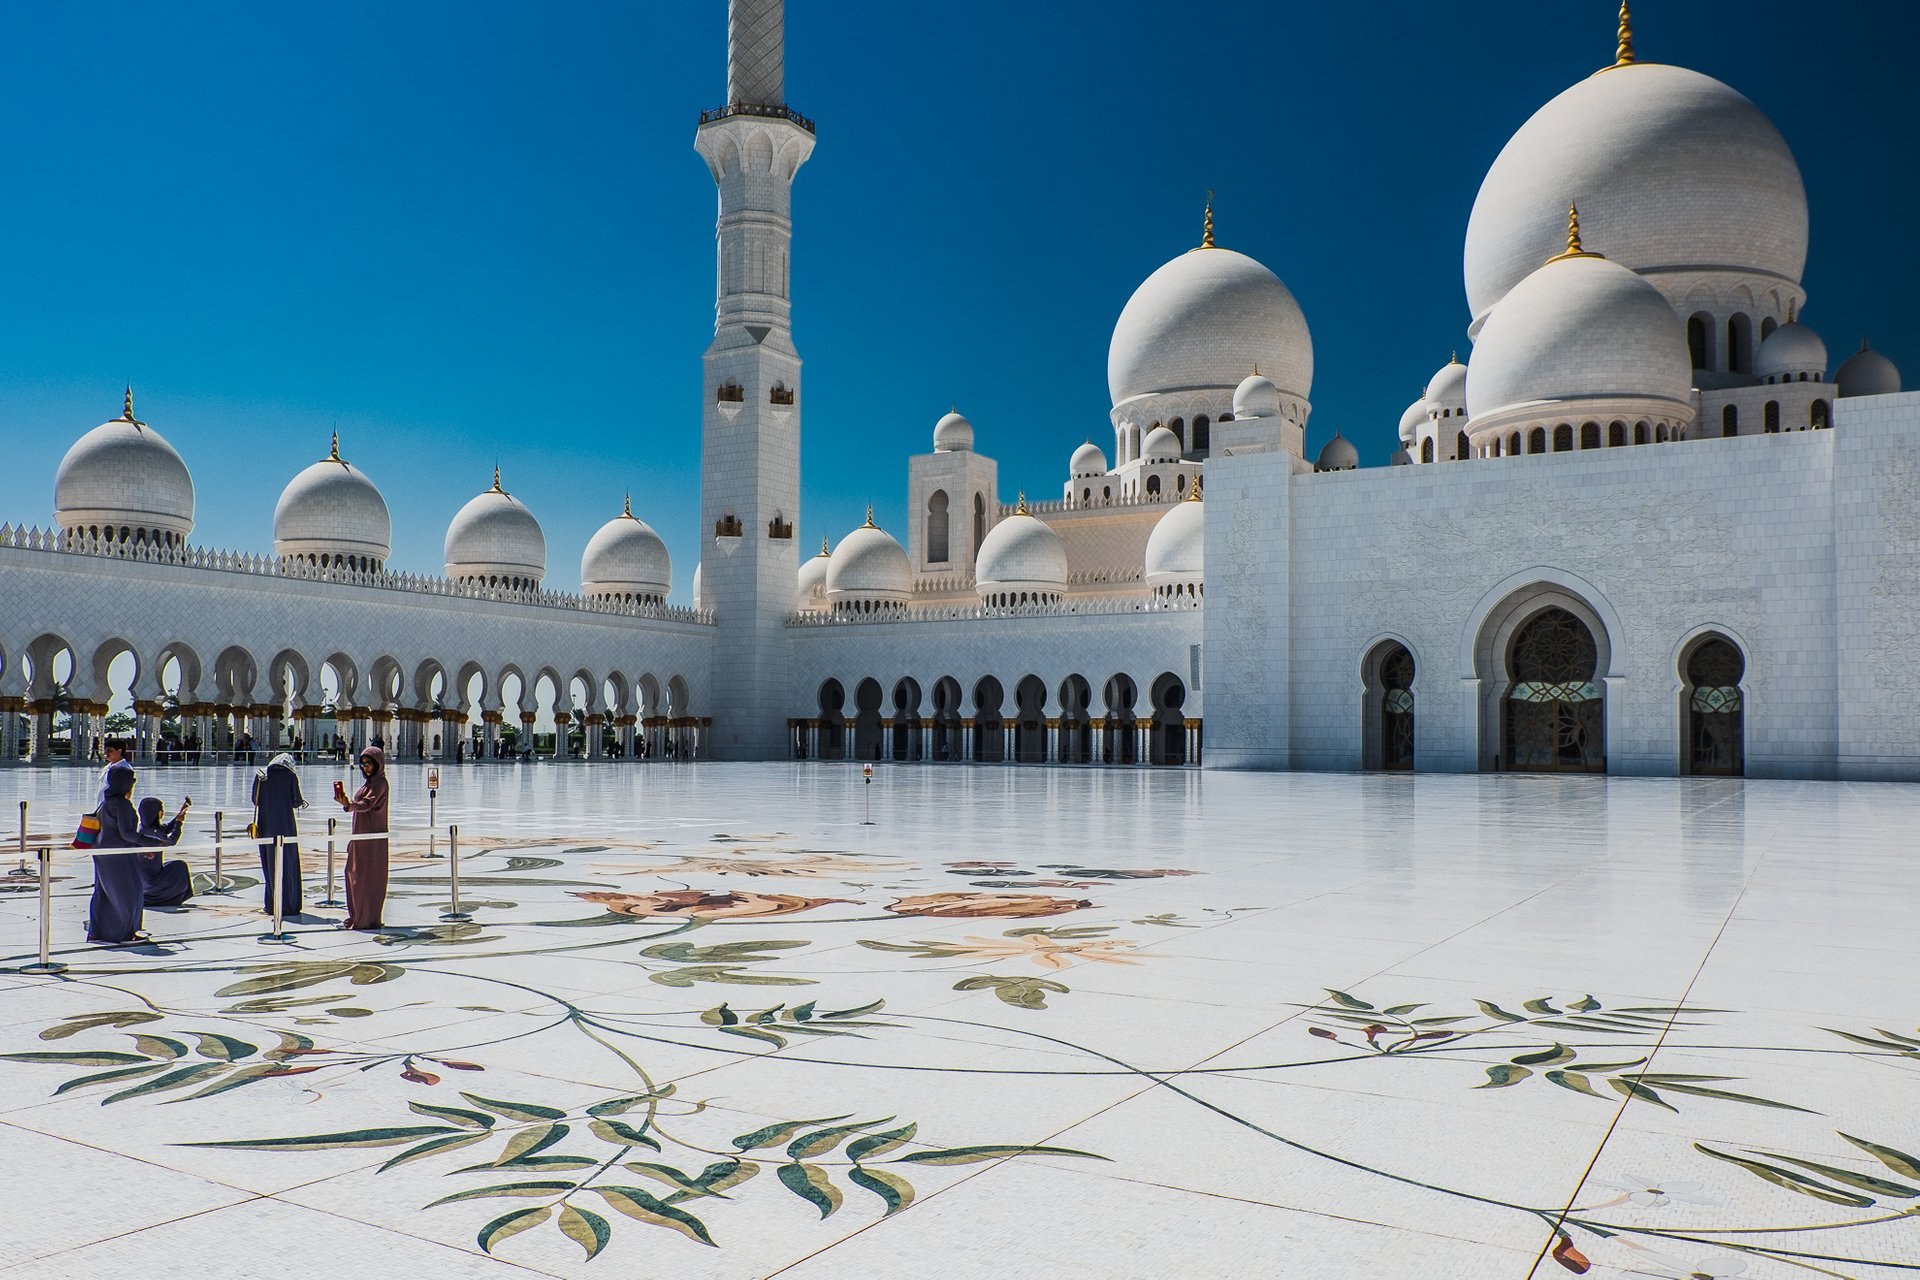 Best time to see Sheikh Zayed Grand Mosque in Abu Dhabi 2020